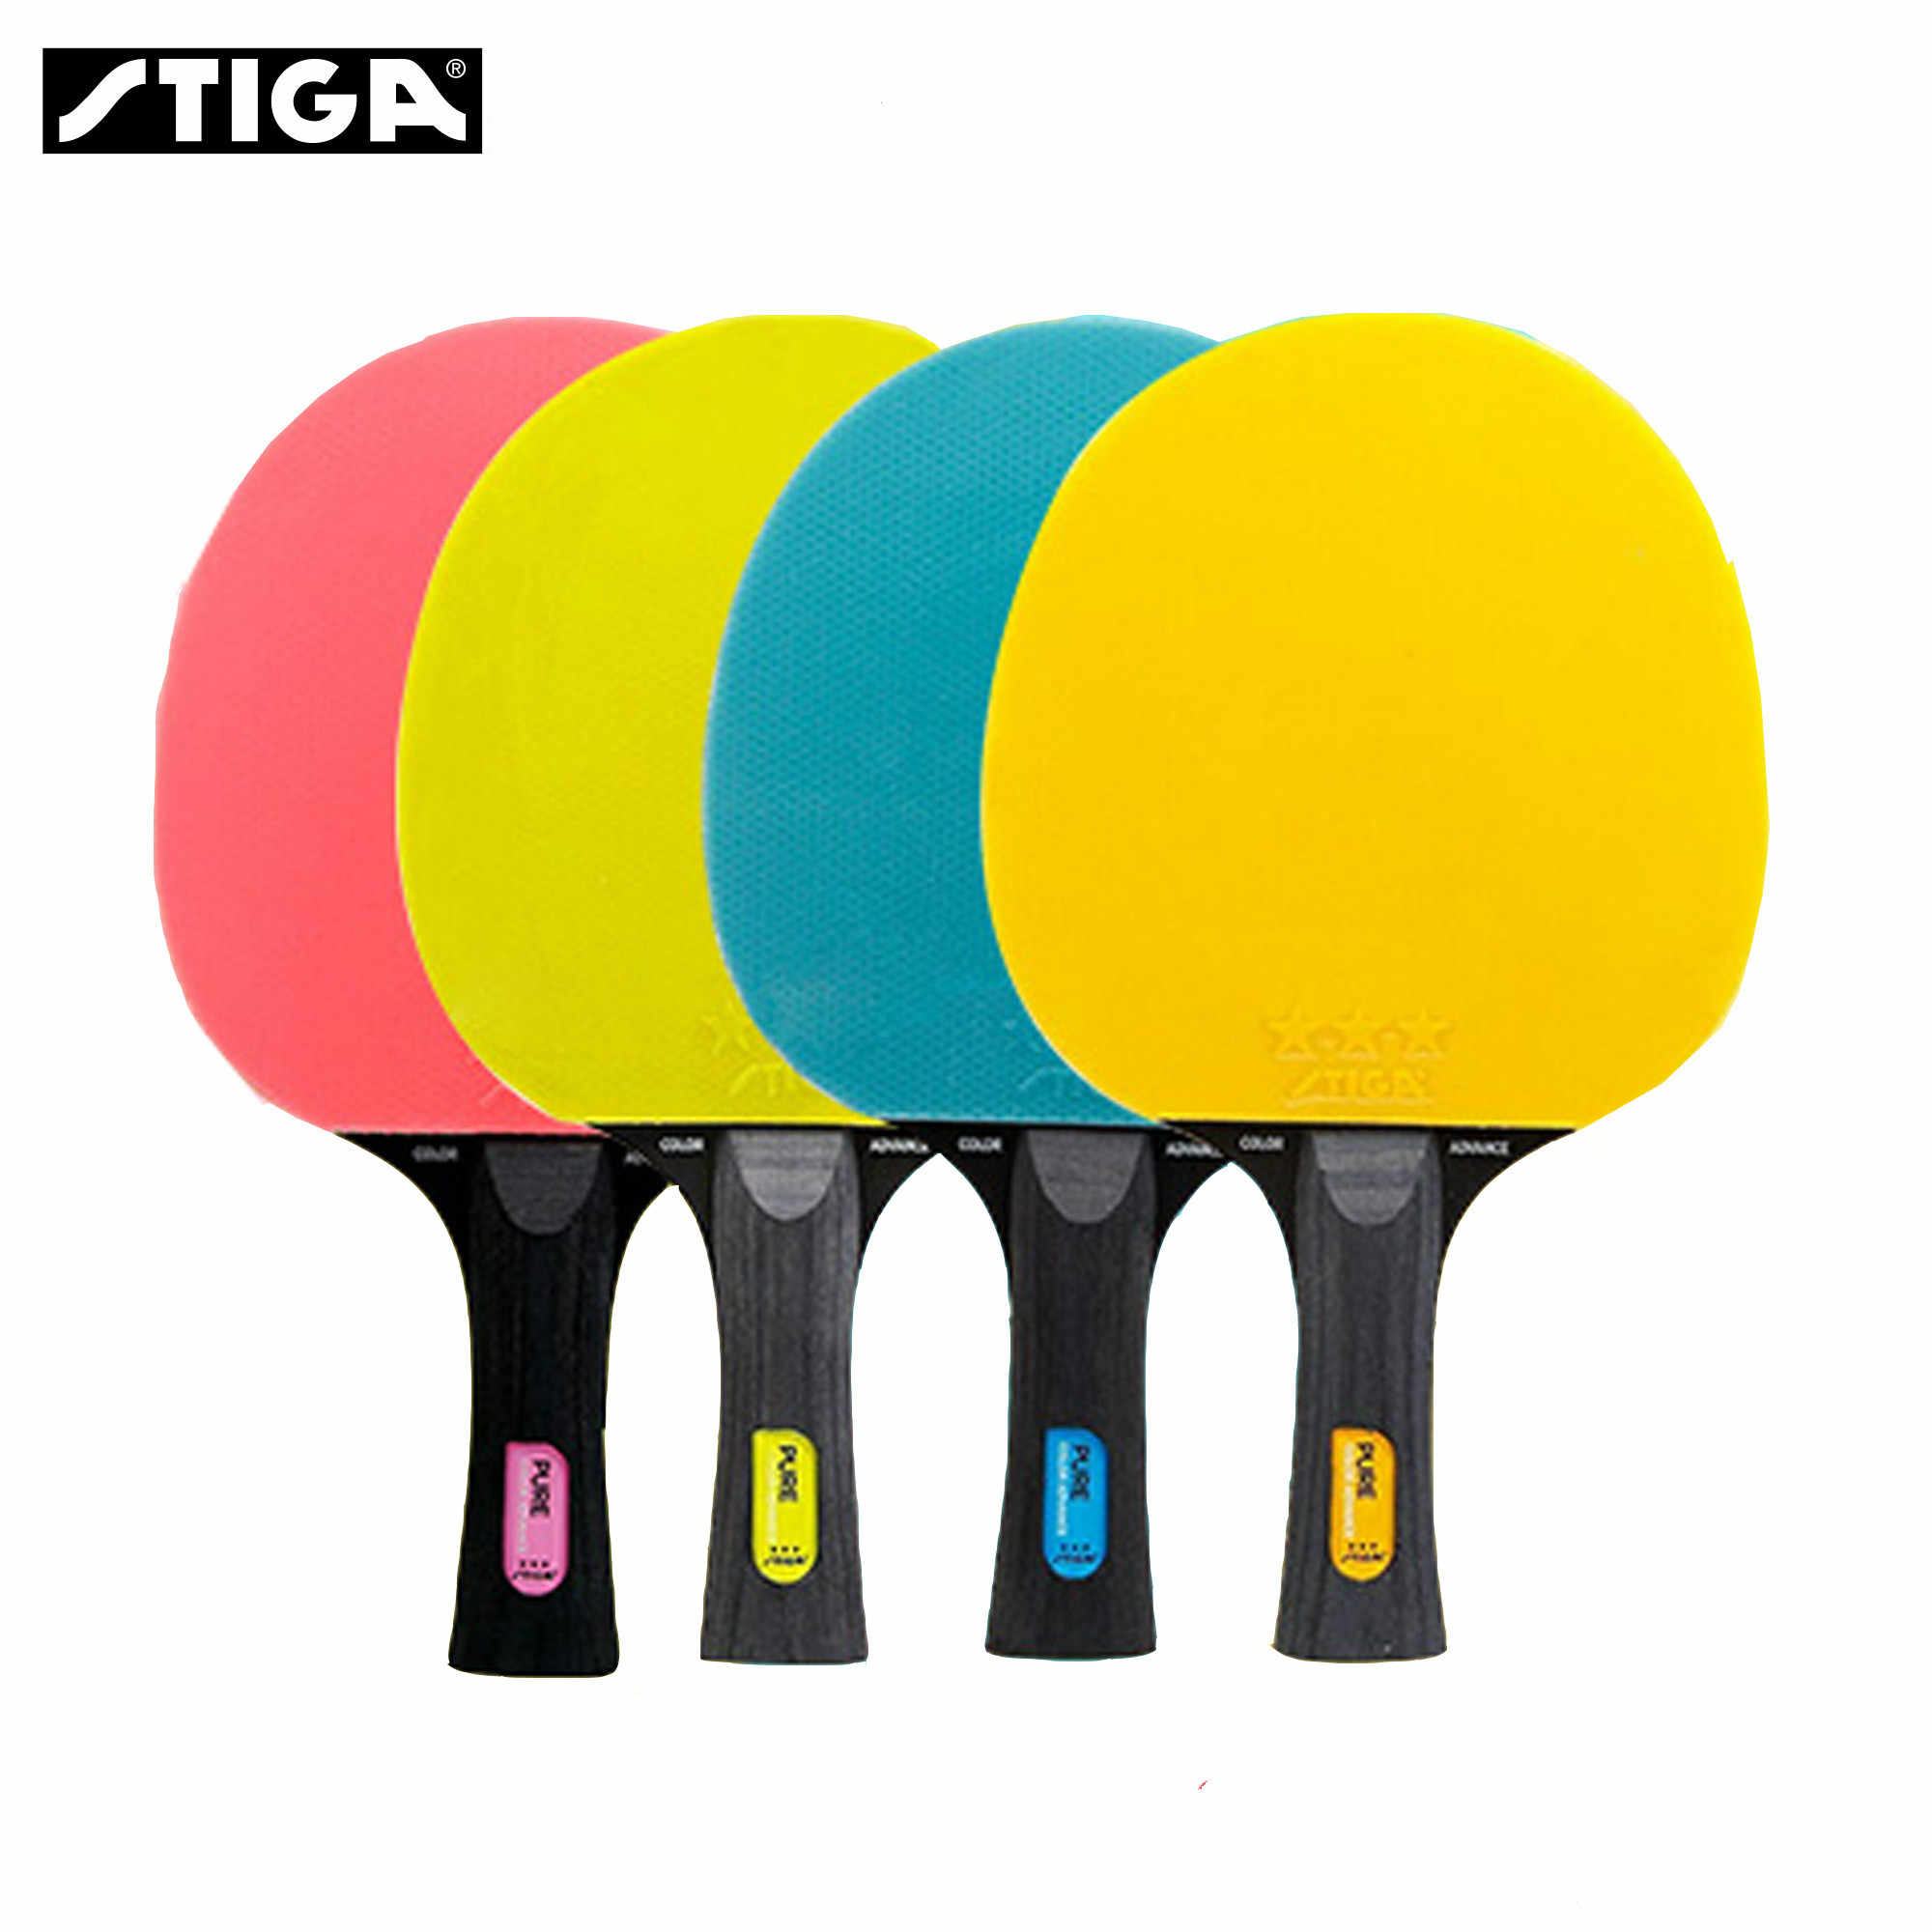 Raqueta de tenis de mesa Original Stiga Color puro Advance